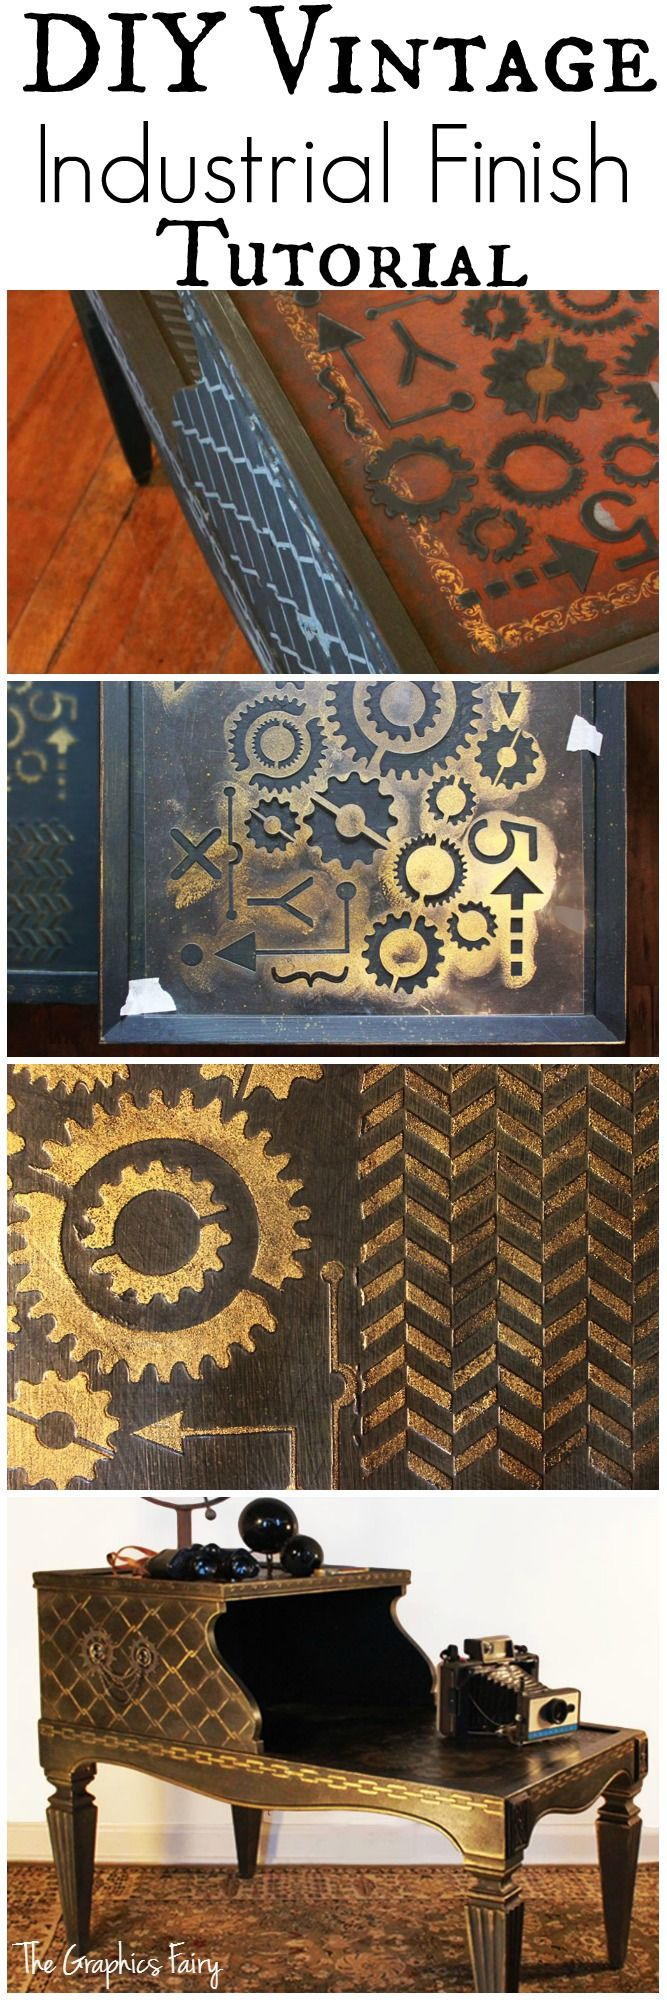 Vintage Industrial Finish Technique! - Graphics Fairy. Great Technique for Furniture, DIY Home Decor and Crafts!